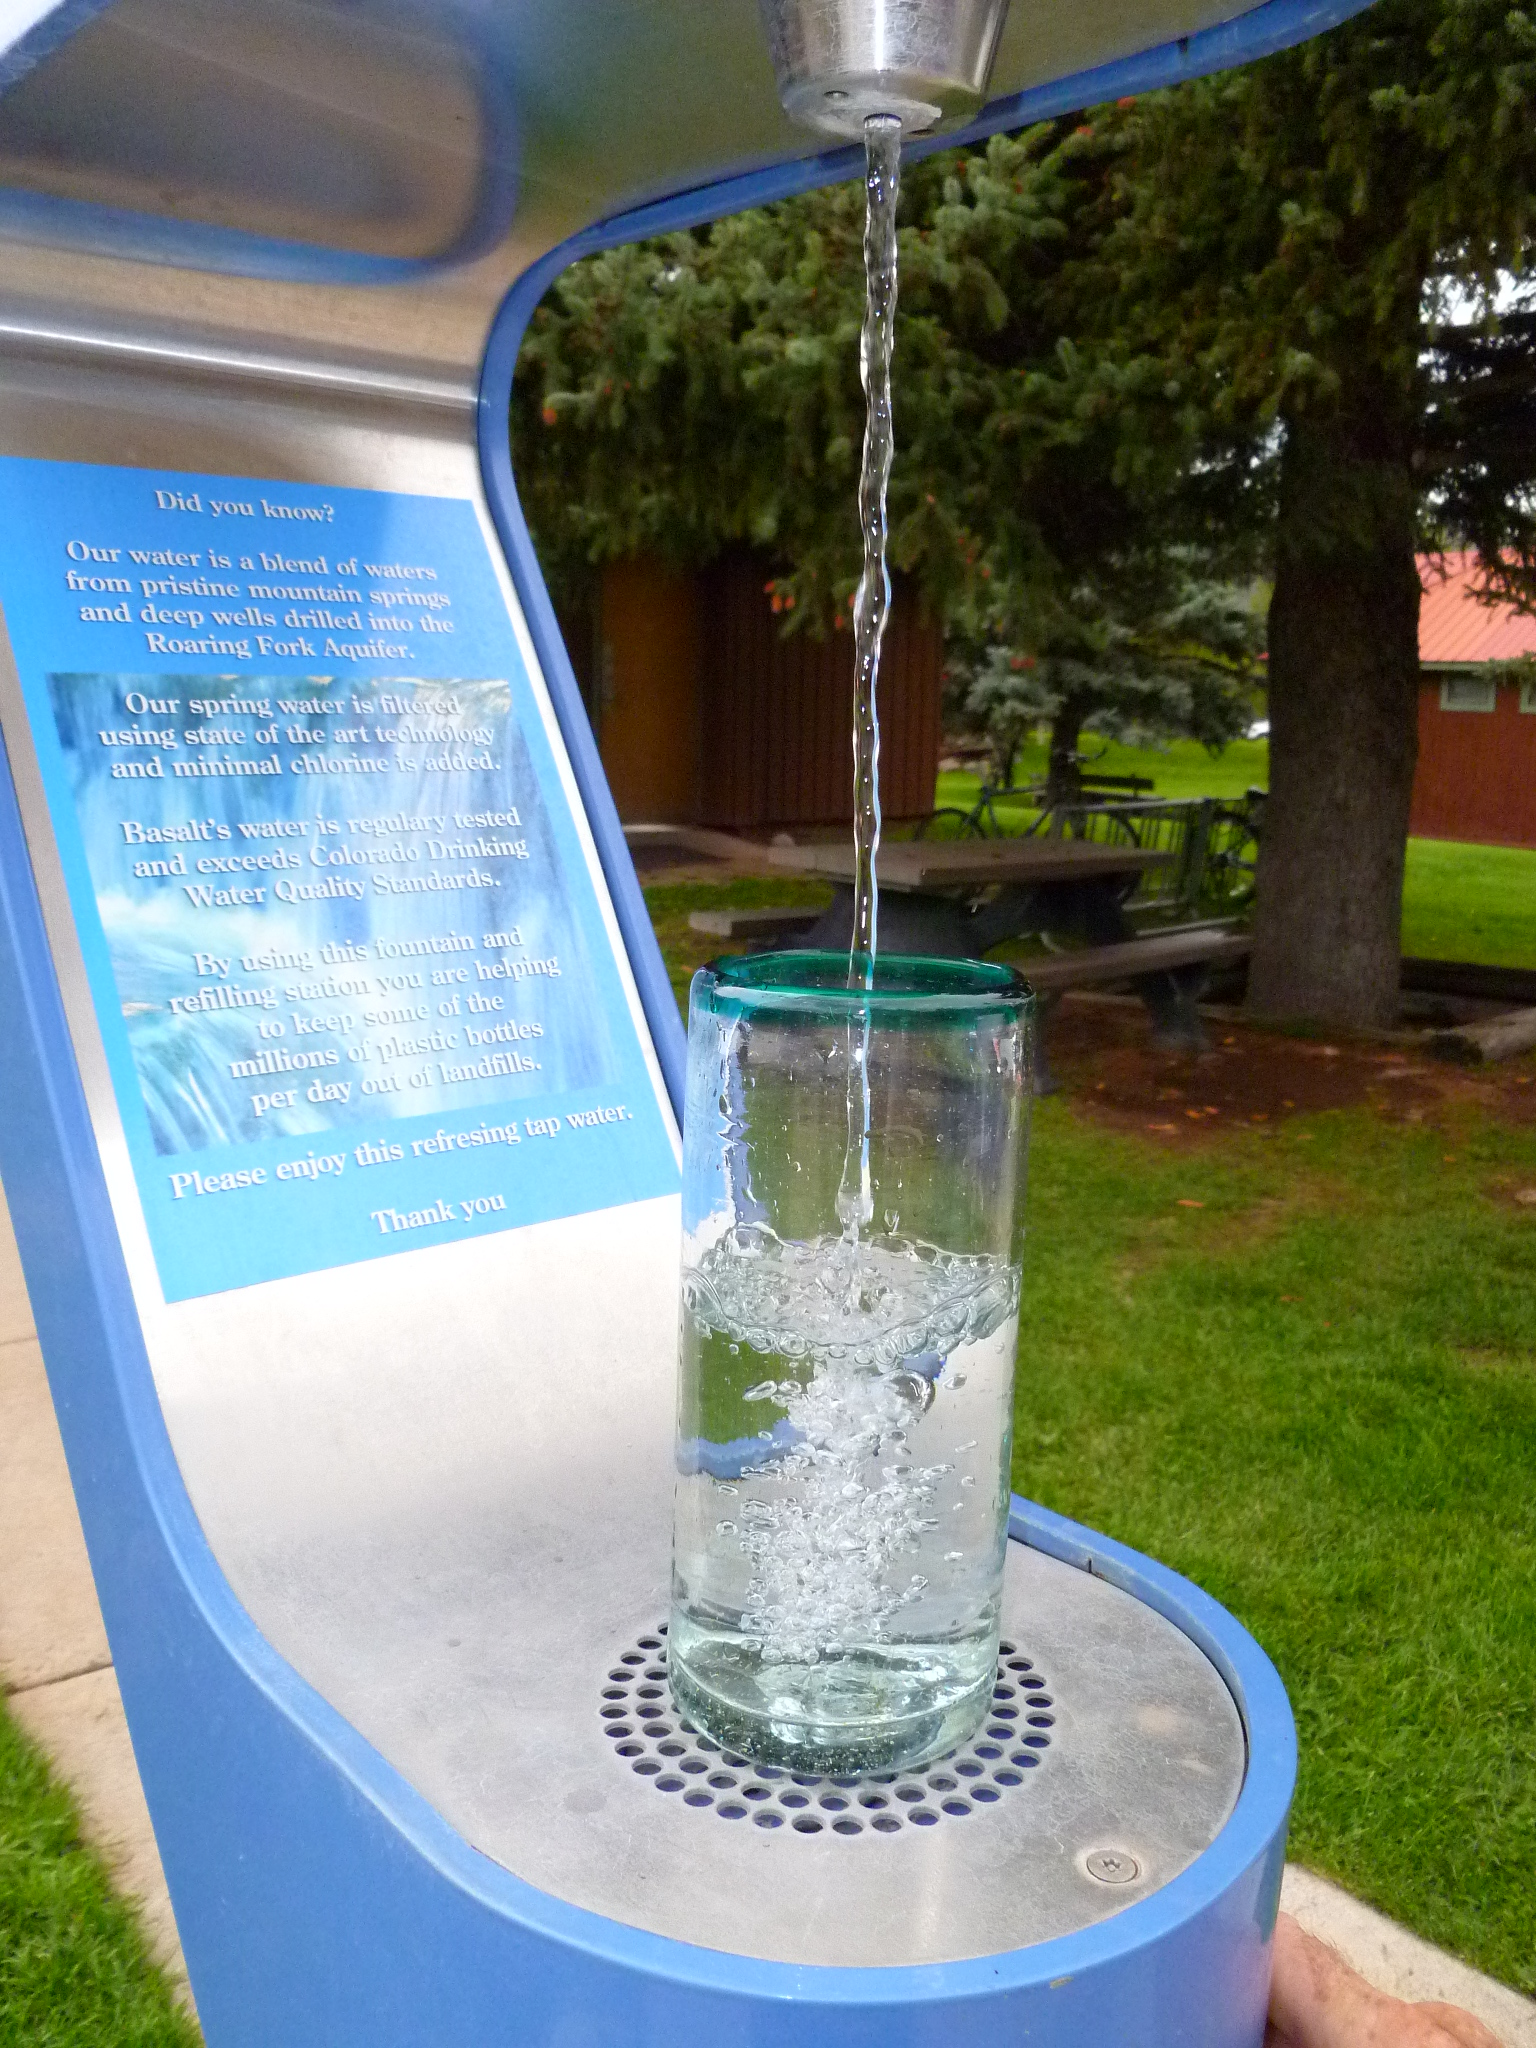 Refill your water bottle with Basalt tap water